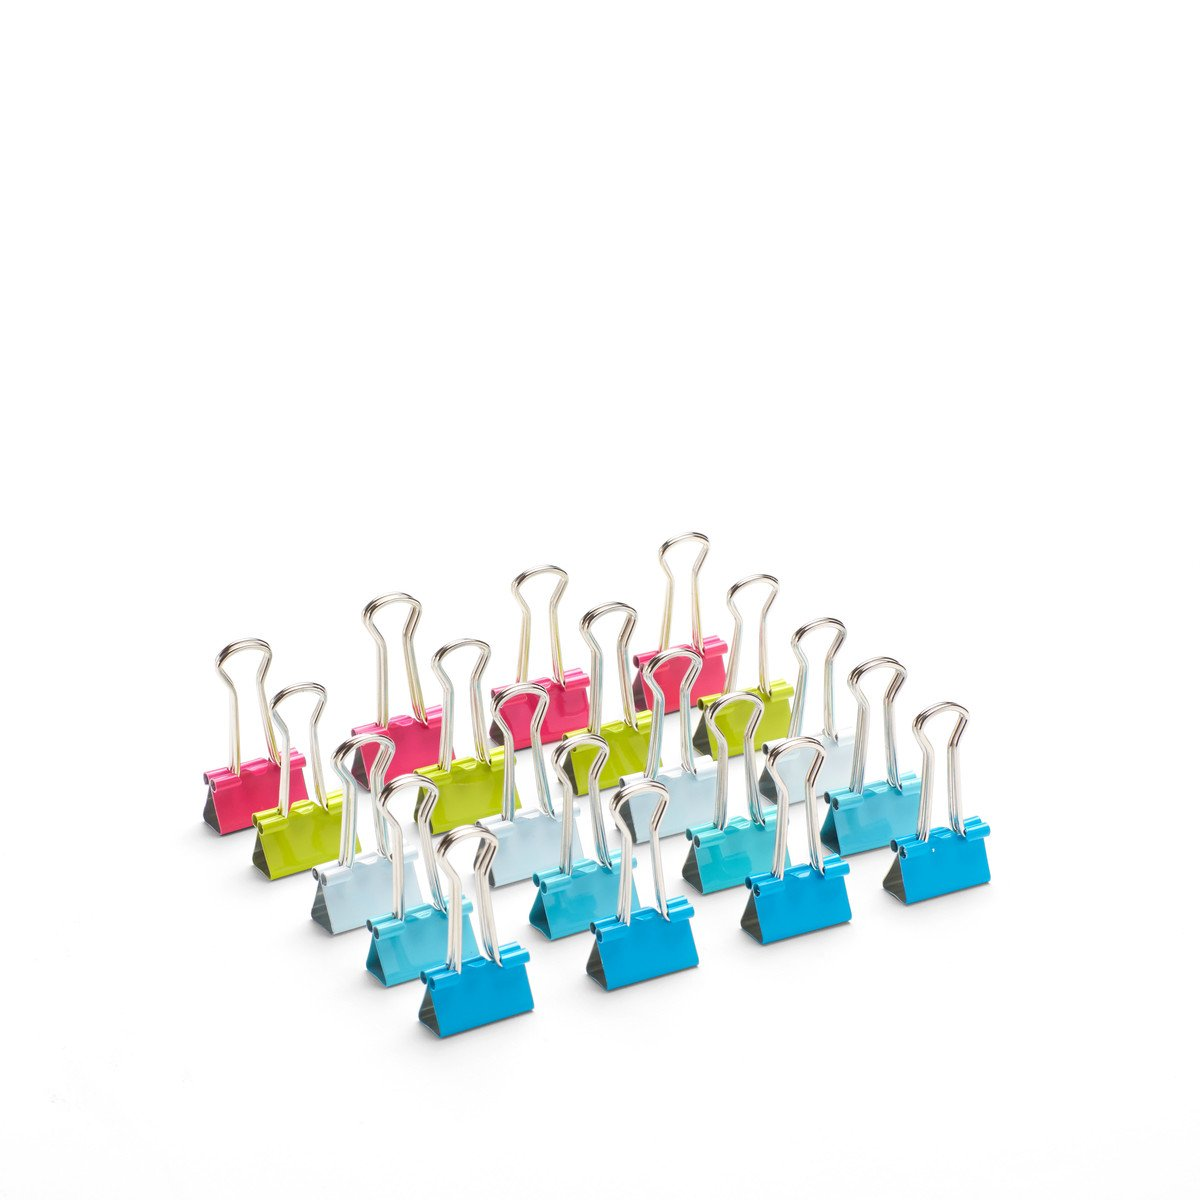 Poppin Bulk Pack of Assorted Small Binder Clips (960 count)